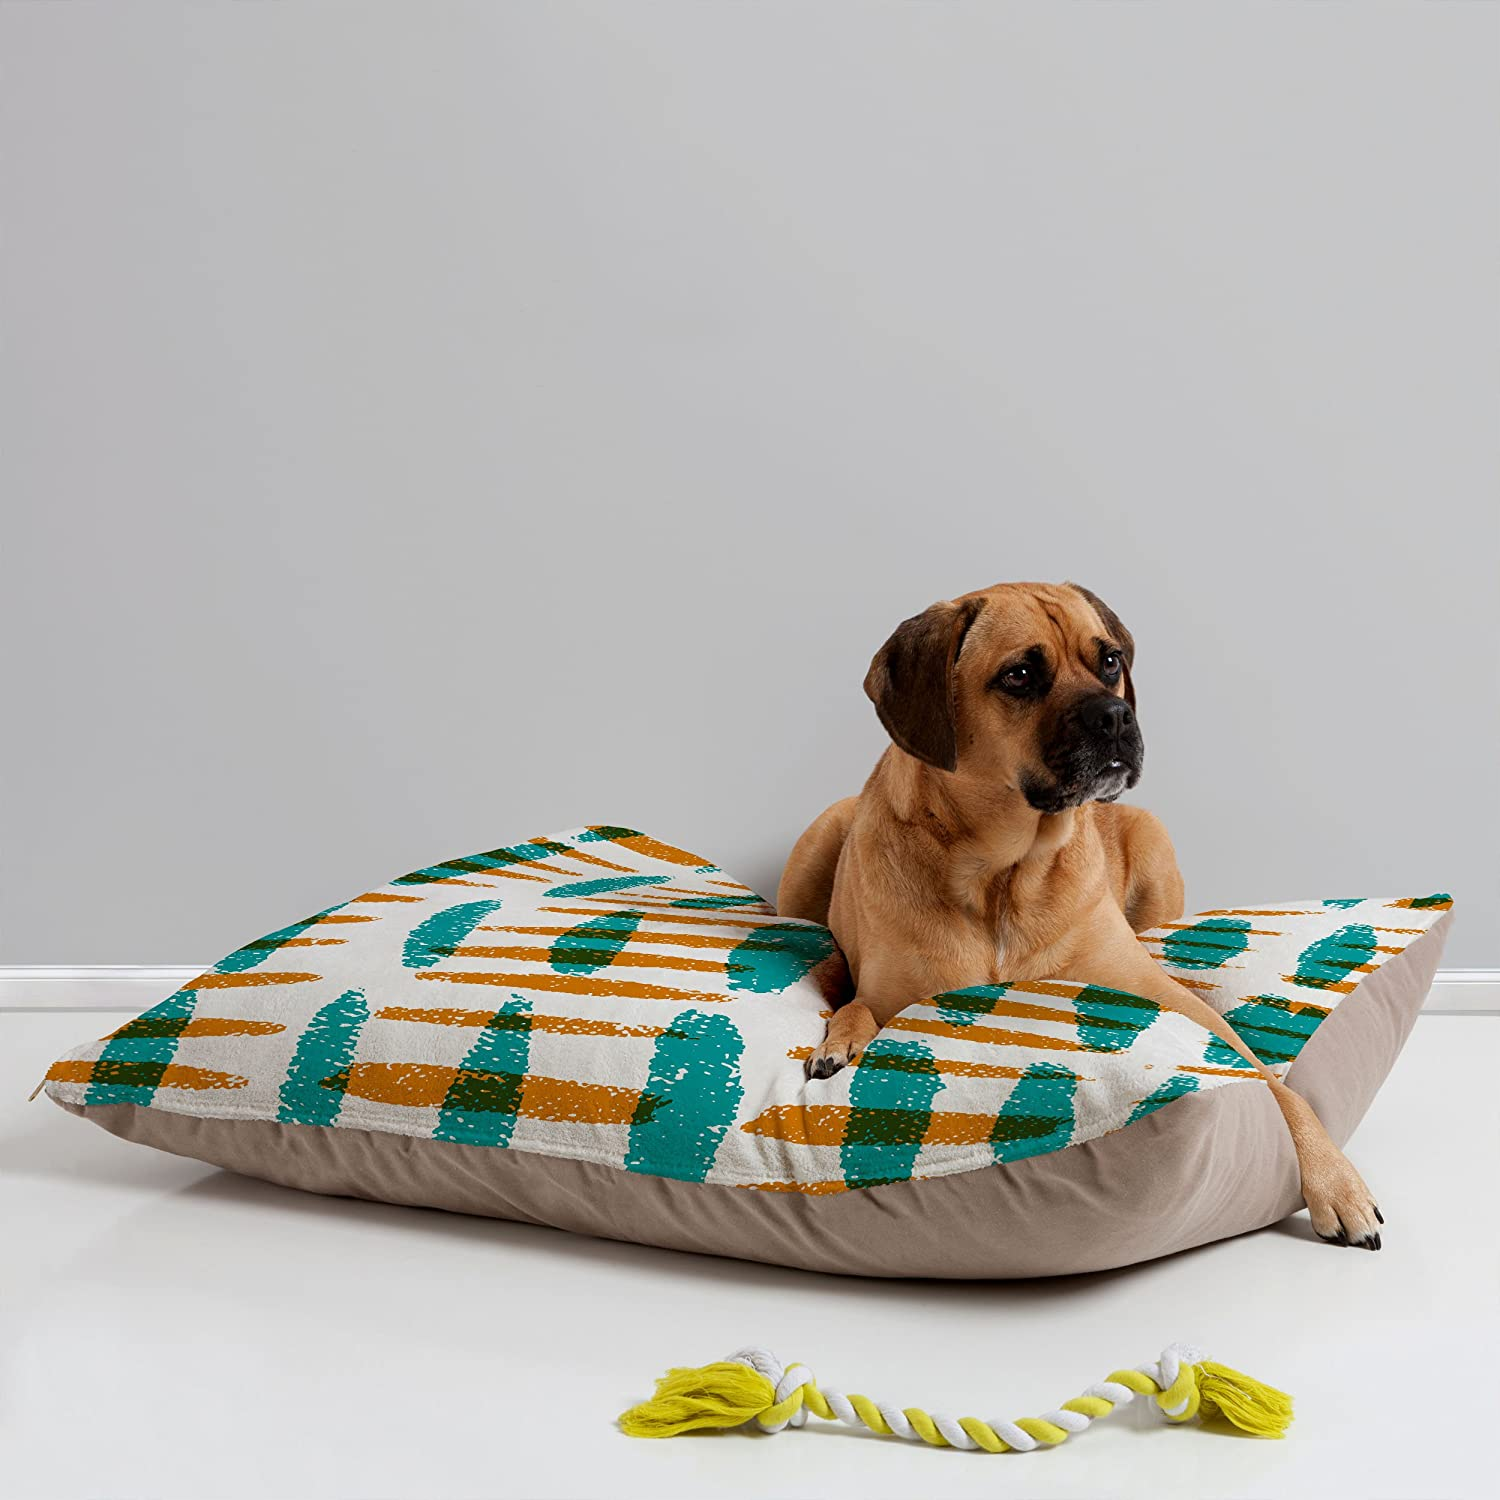 Doggie-pillow-1 +80 Adorable Dog Bed Designs That Will Surprise You